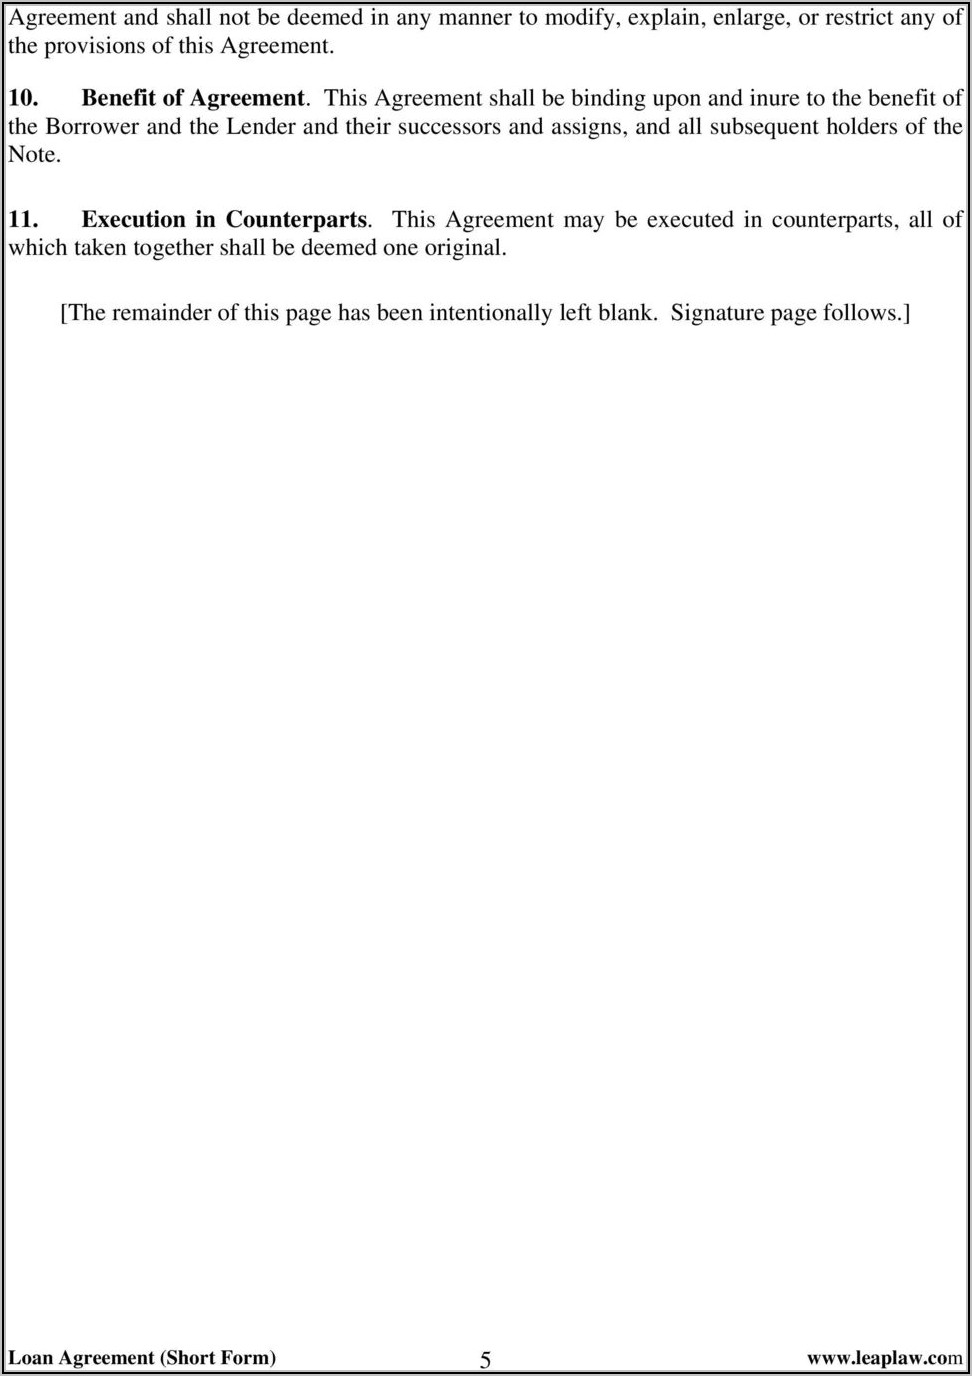 Loan Agreement Form Free Download